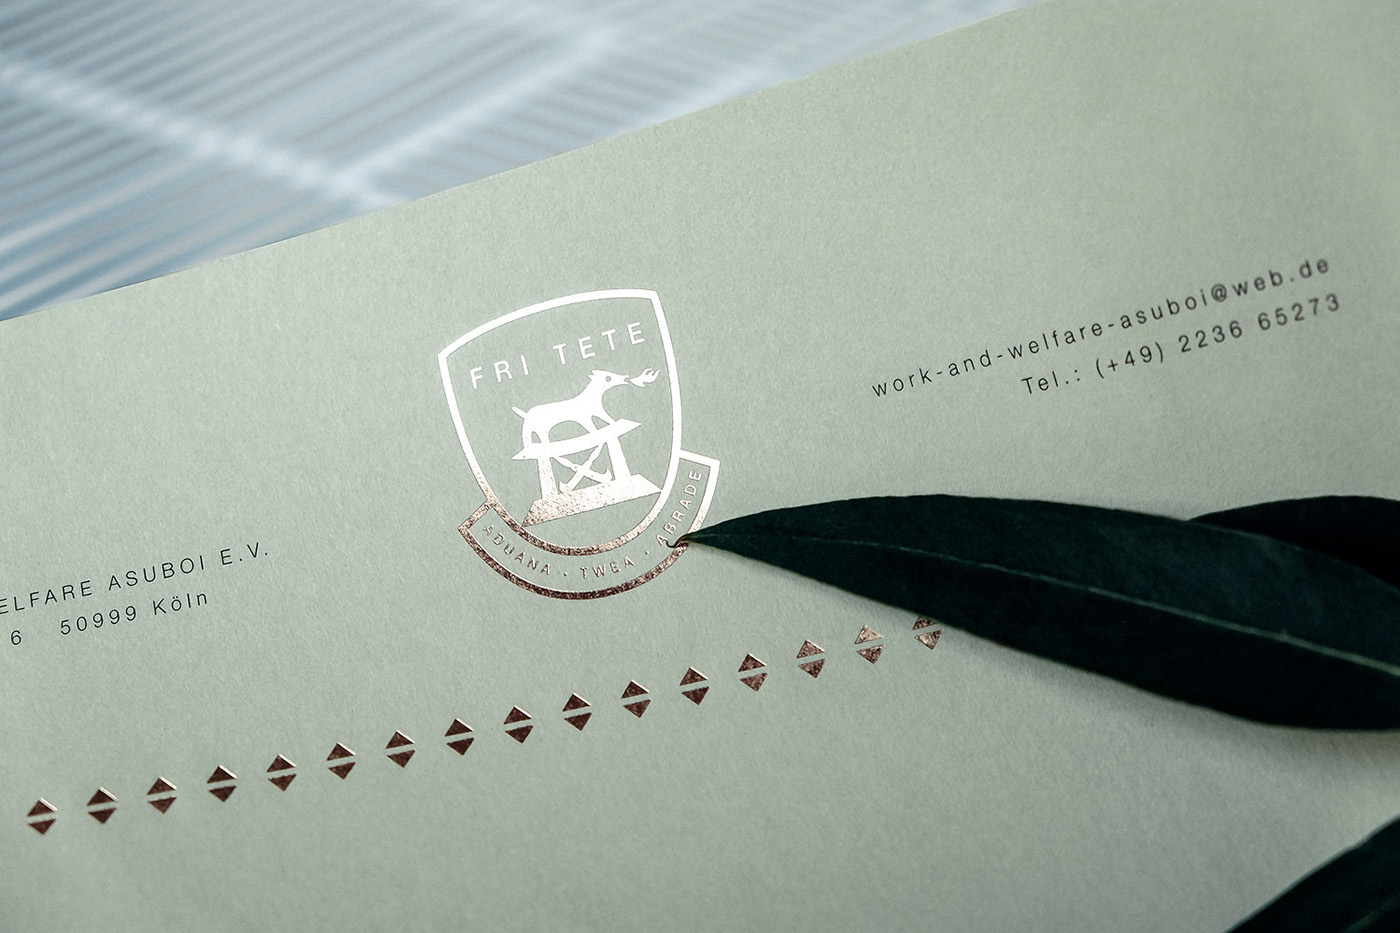 Stationary Design – A Royal Letterhead